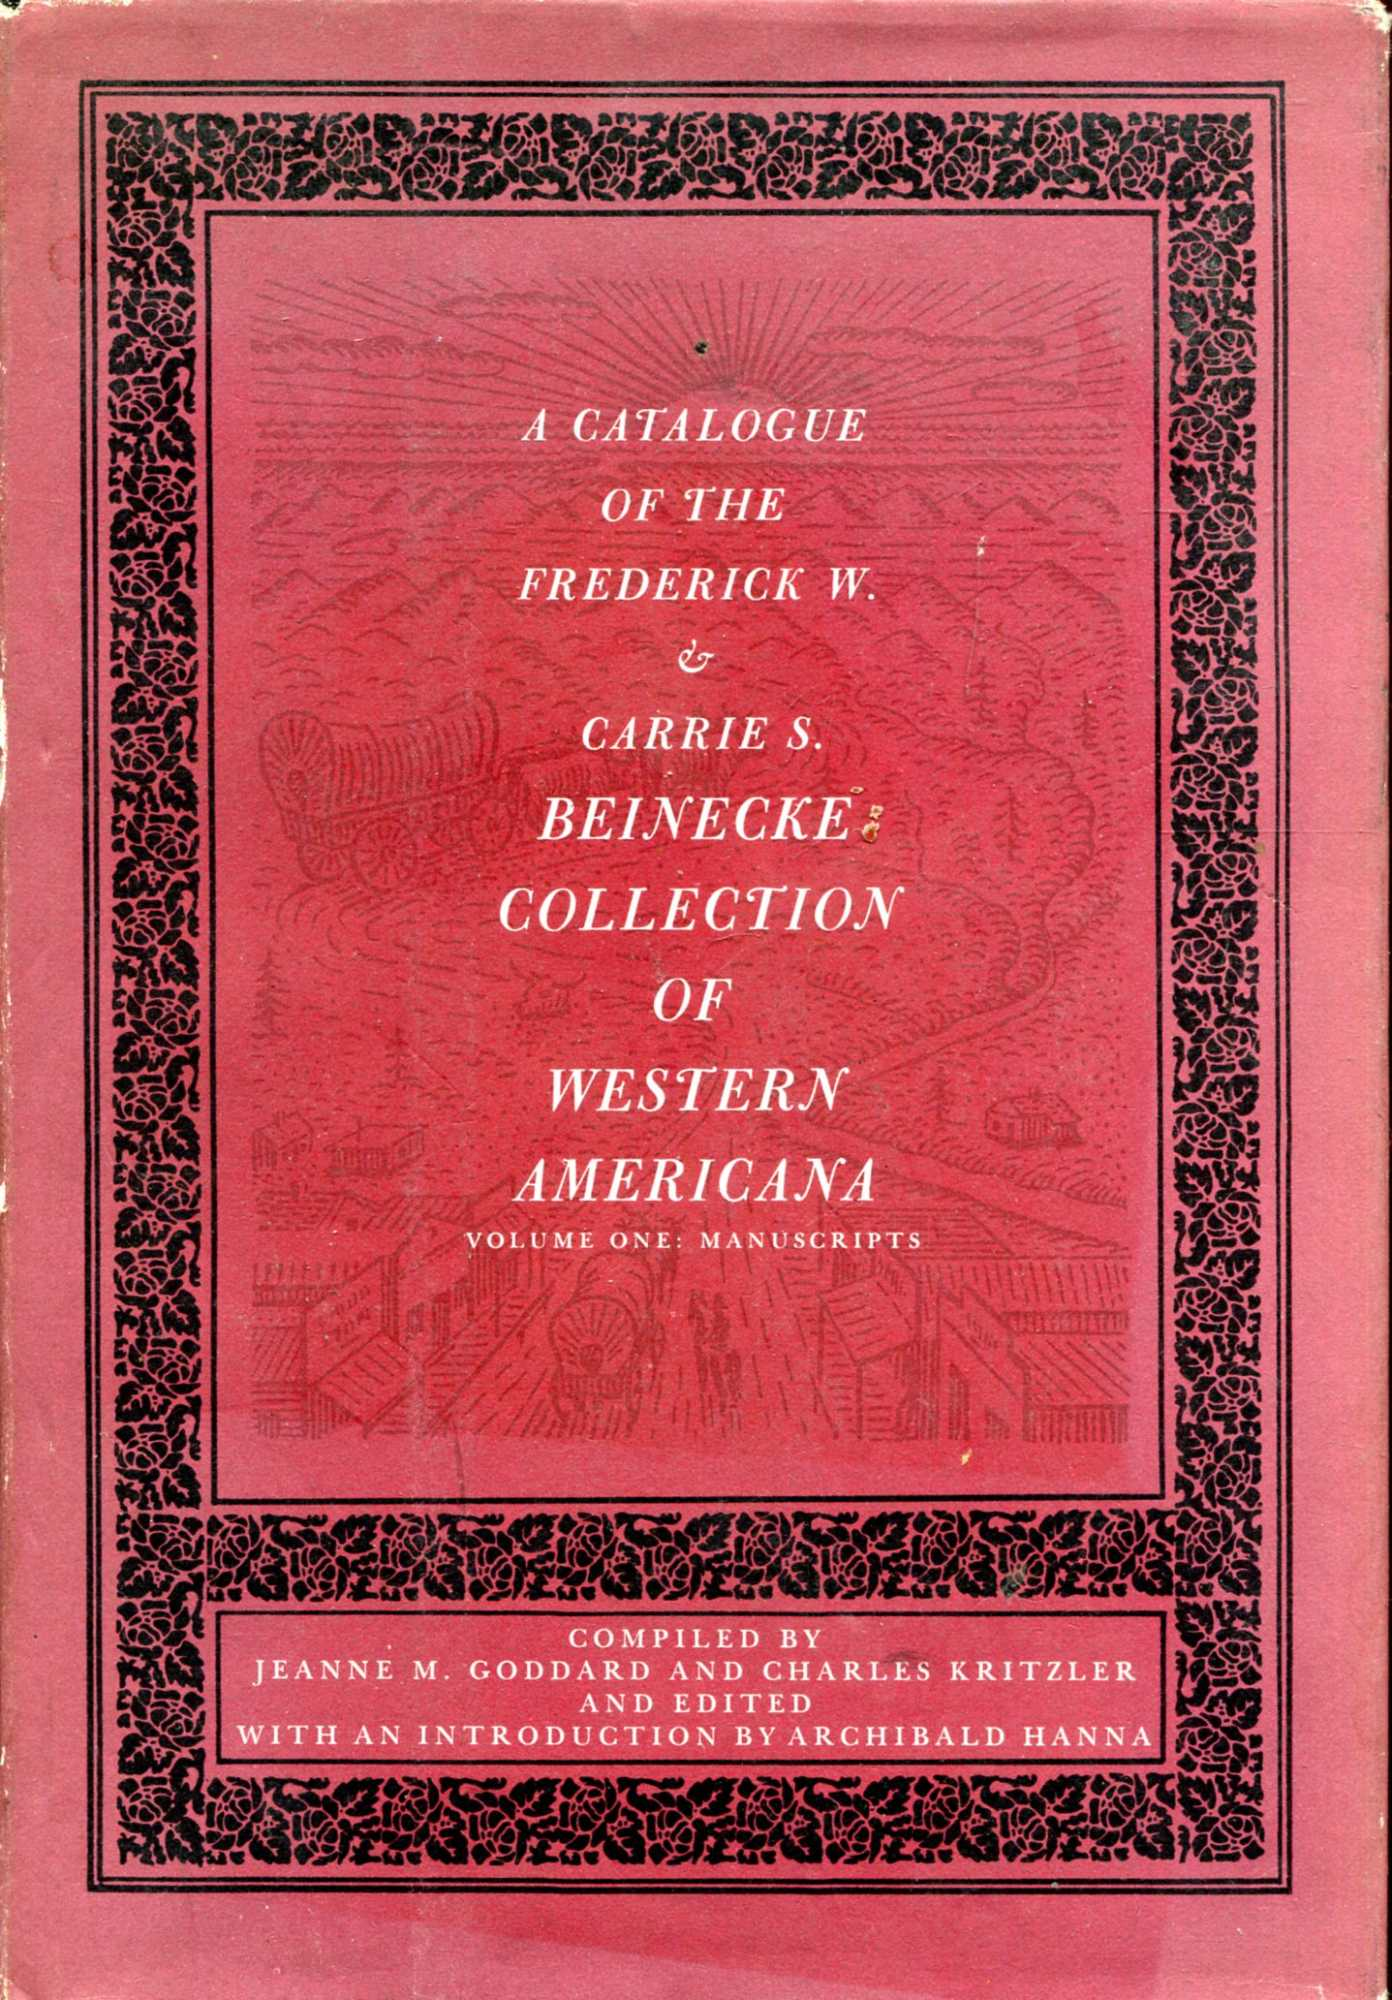 Image for A Catalogueof the Frederick W & Carrie S Beinecke Collection of Western Americana, volume one : Manuscripts